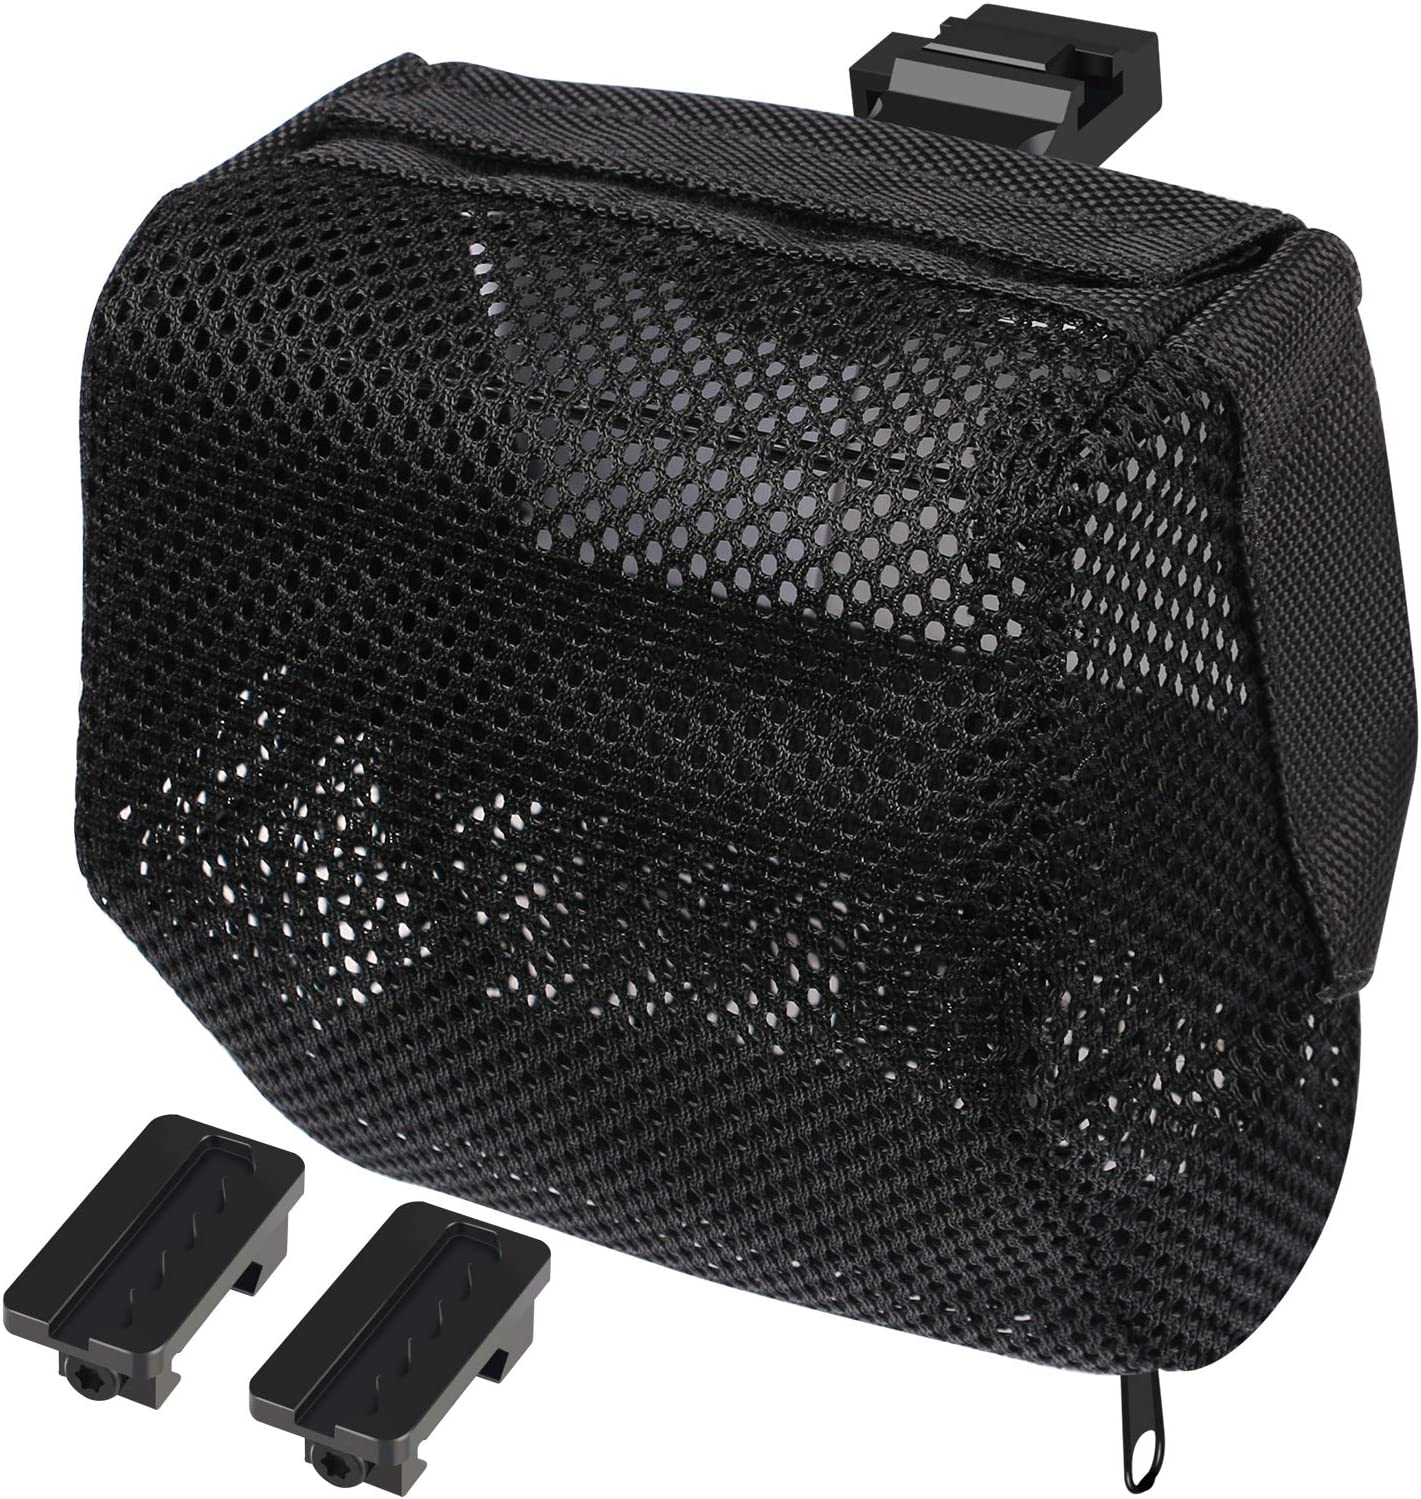 XAegis Brass Catcher, Universal Shell Catcher Net with Picatinny Rail Mount Heat Resistant Mesh Brass Collection for Rifle Range,Included Two Pic Rail Mounts